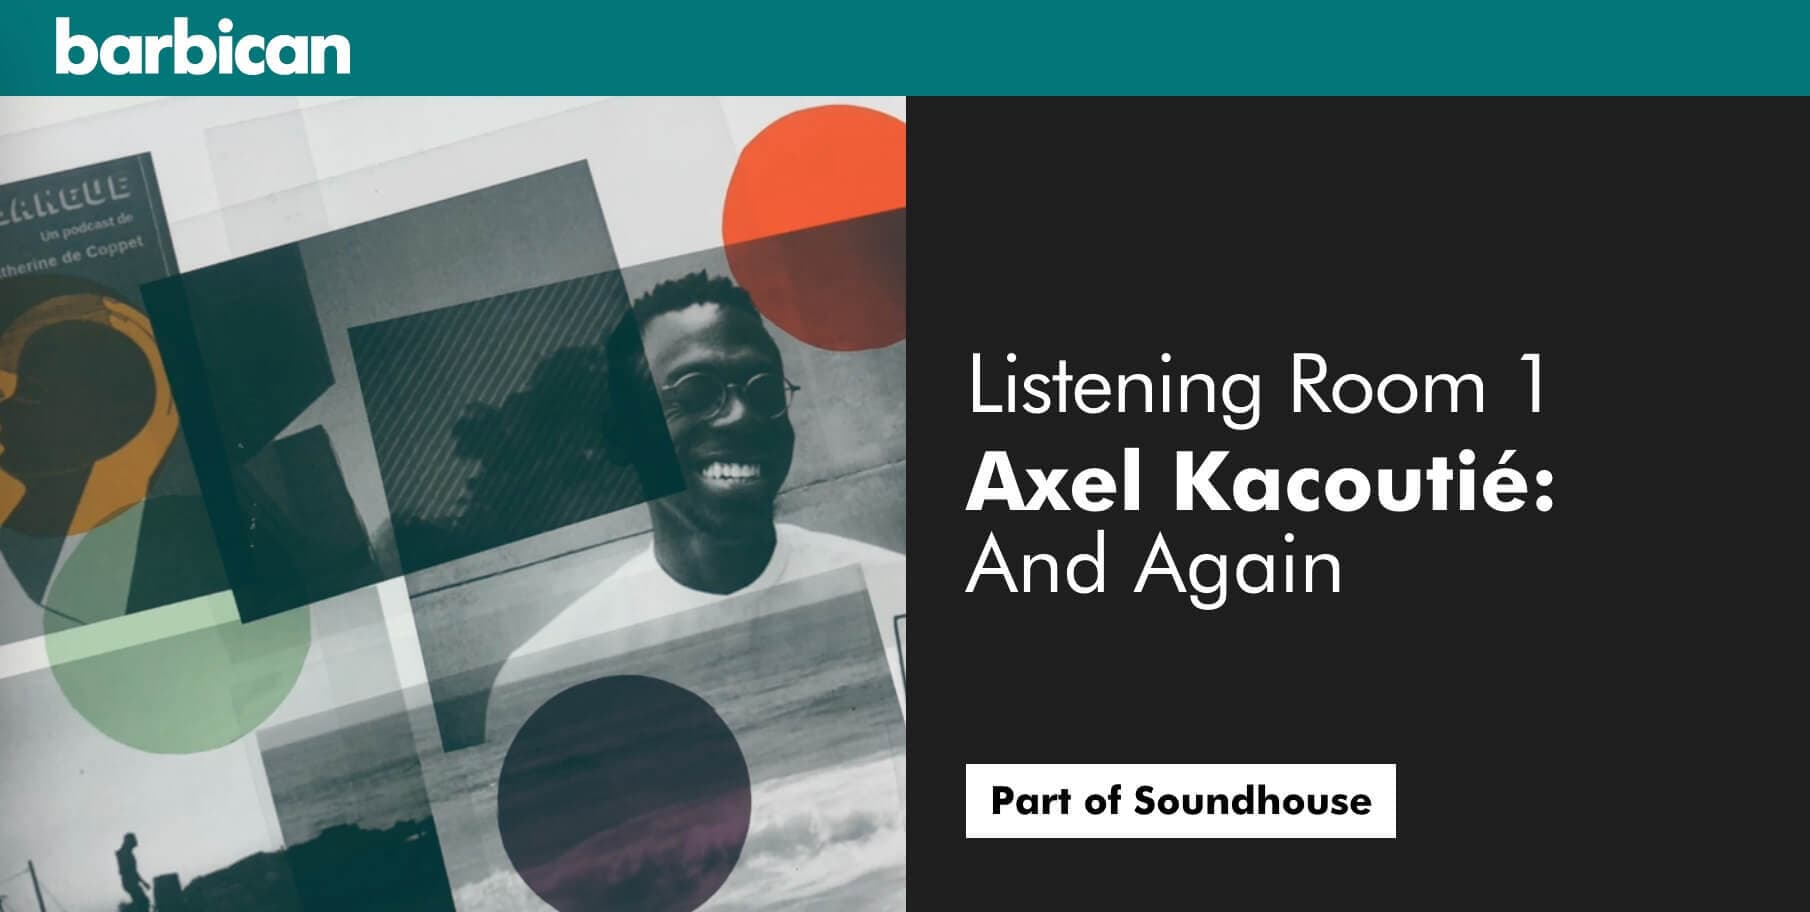 Barbican Soundhouse listening room 1: Axel